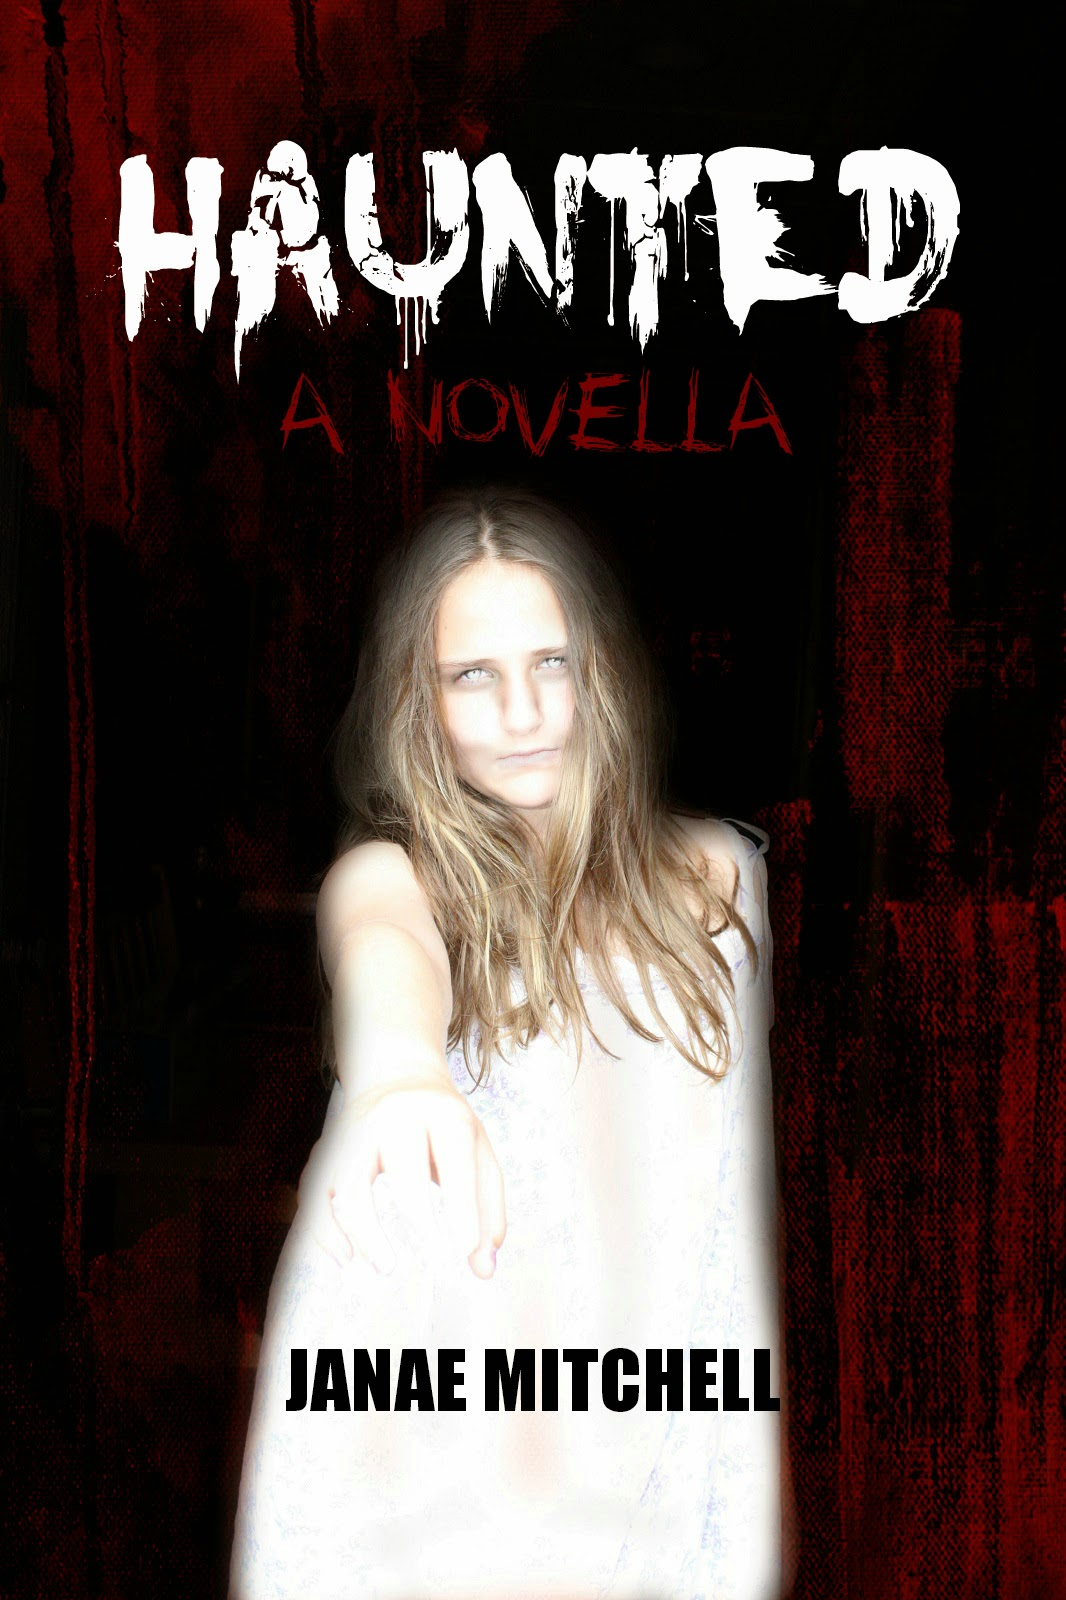 http://www.amazon.com/Haunted-Janae-Mitchell-ebook/dp/B00K1OWAV2/ref=la_B00GSG0XES_1_3?s=books&ie=UTF8&qid=1398967711&sr=1-3